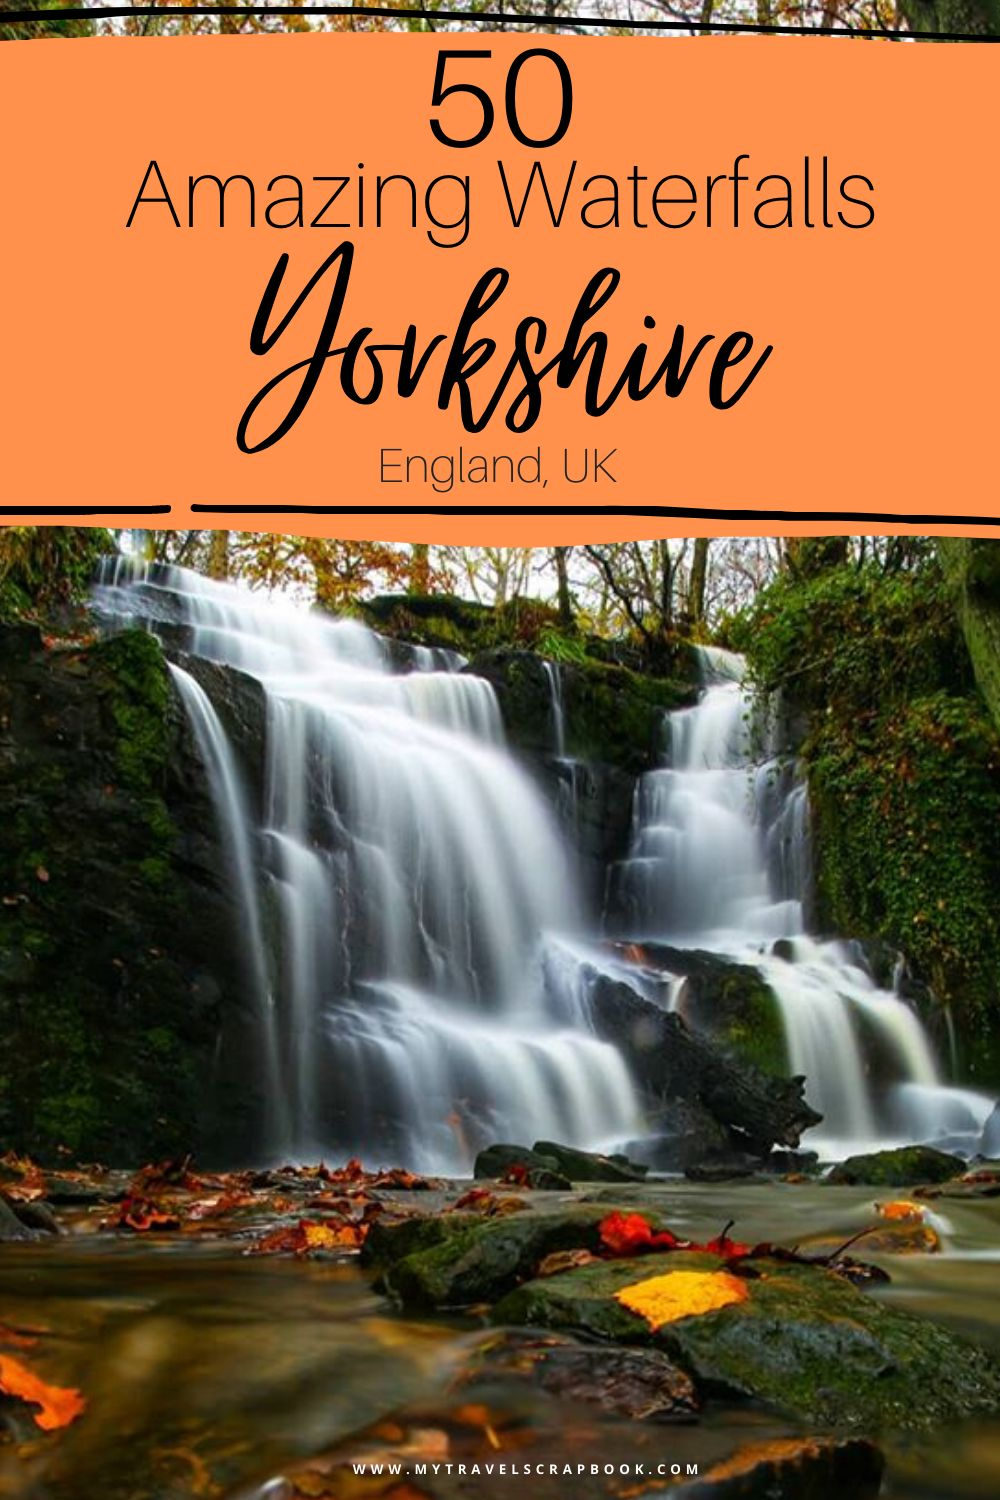 Beautiful waterfalls in Yorkshire! There are many wonderful Yorkshire waterfalls to discover on your next Yorkshire visit! From famous waterfalls such as Ingleton Falls in the Yorkshire Dales and Old Meggisson in the North Yorkshire Moors to lesser known ones such as Folly Dolly Falls in West Yorkshire! There are so many wonderful waterfalls in Yorkshire to see. #waterfalls #yorkshire #yorkshirewaterfalls